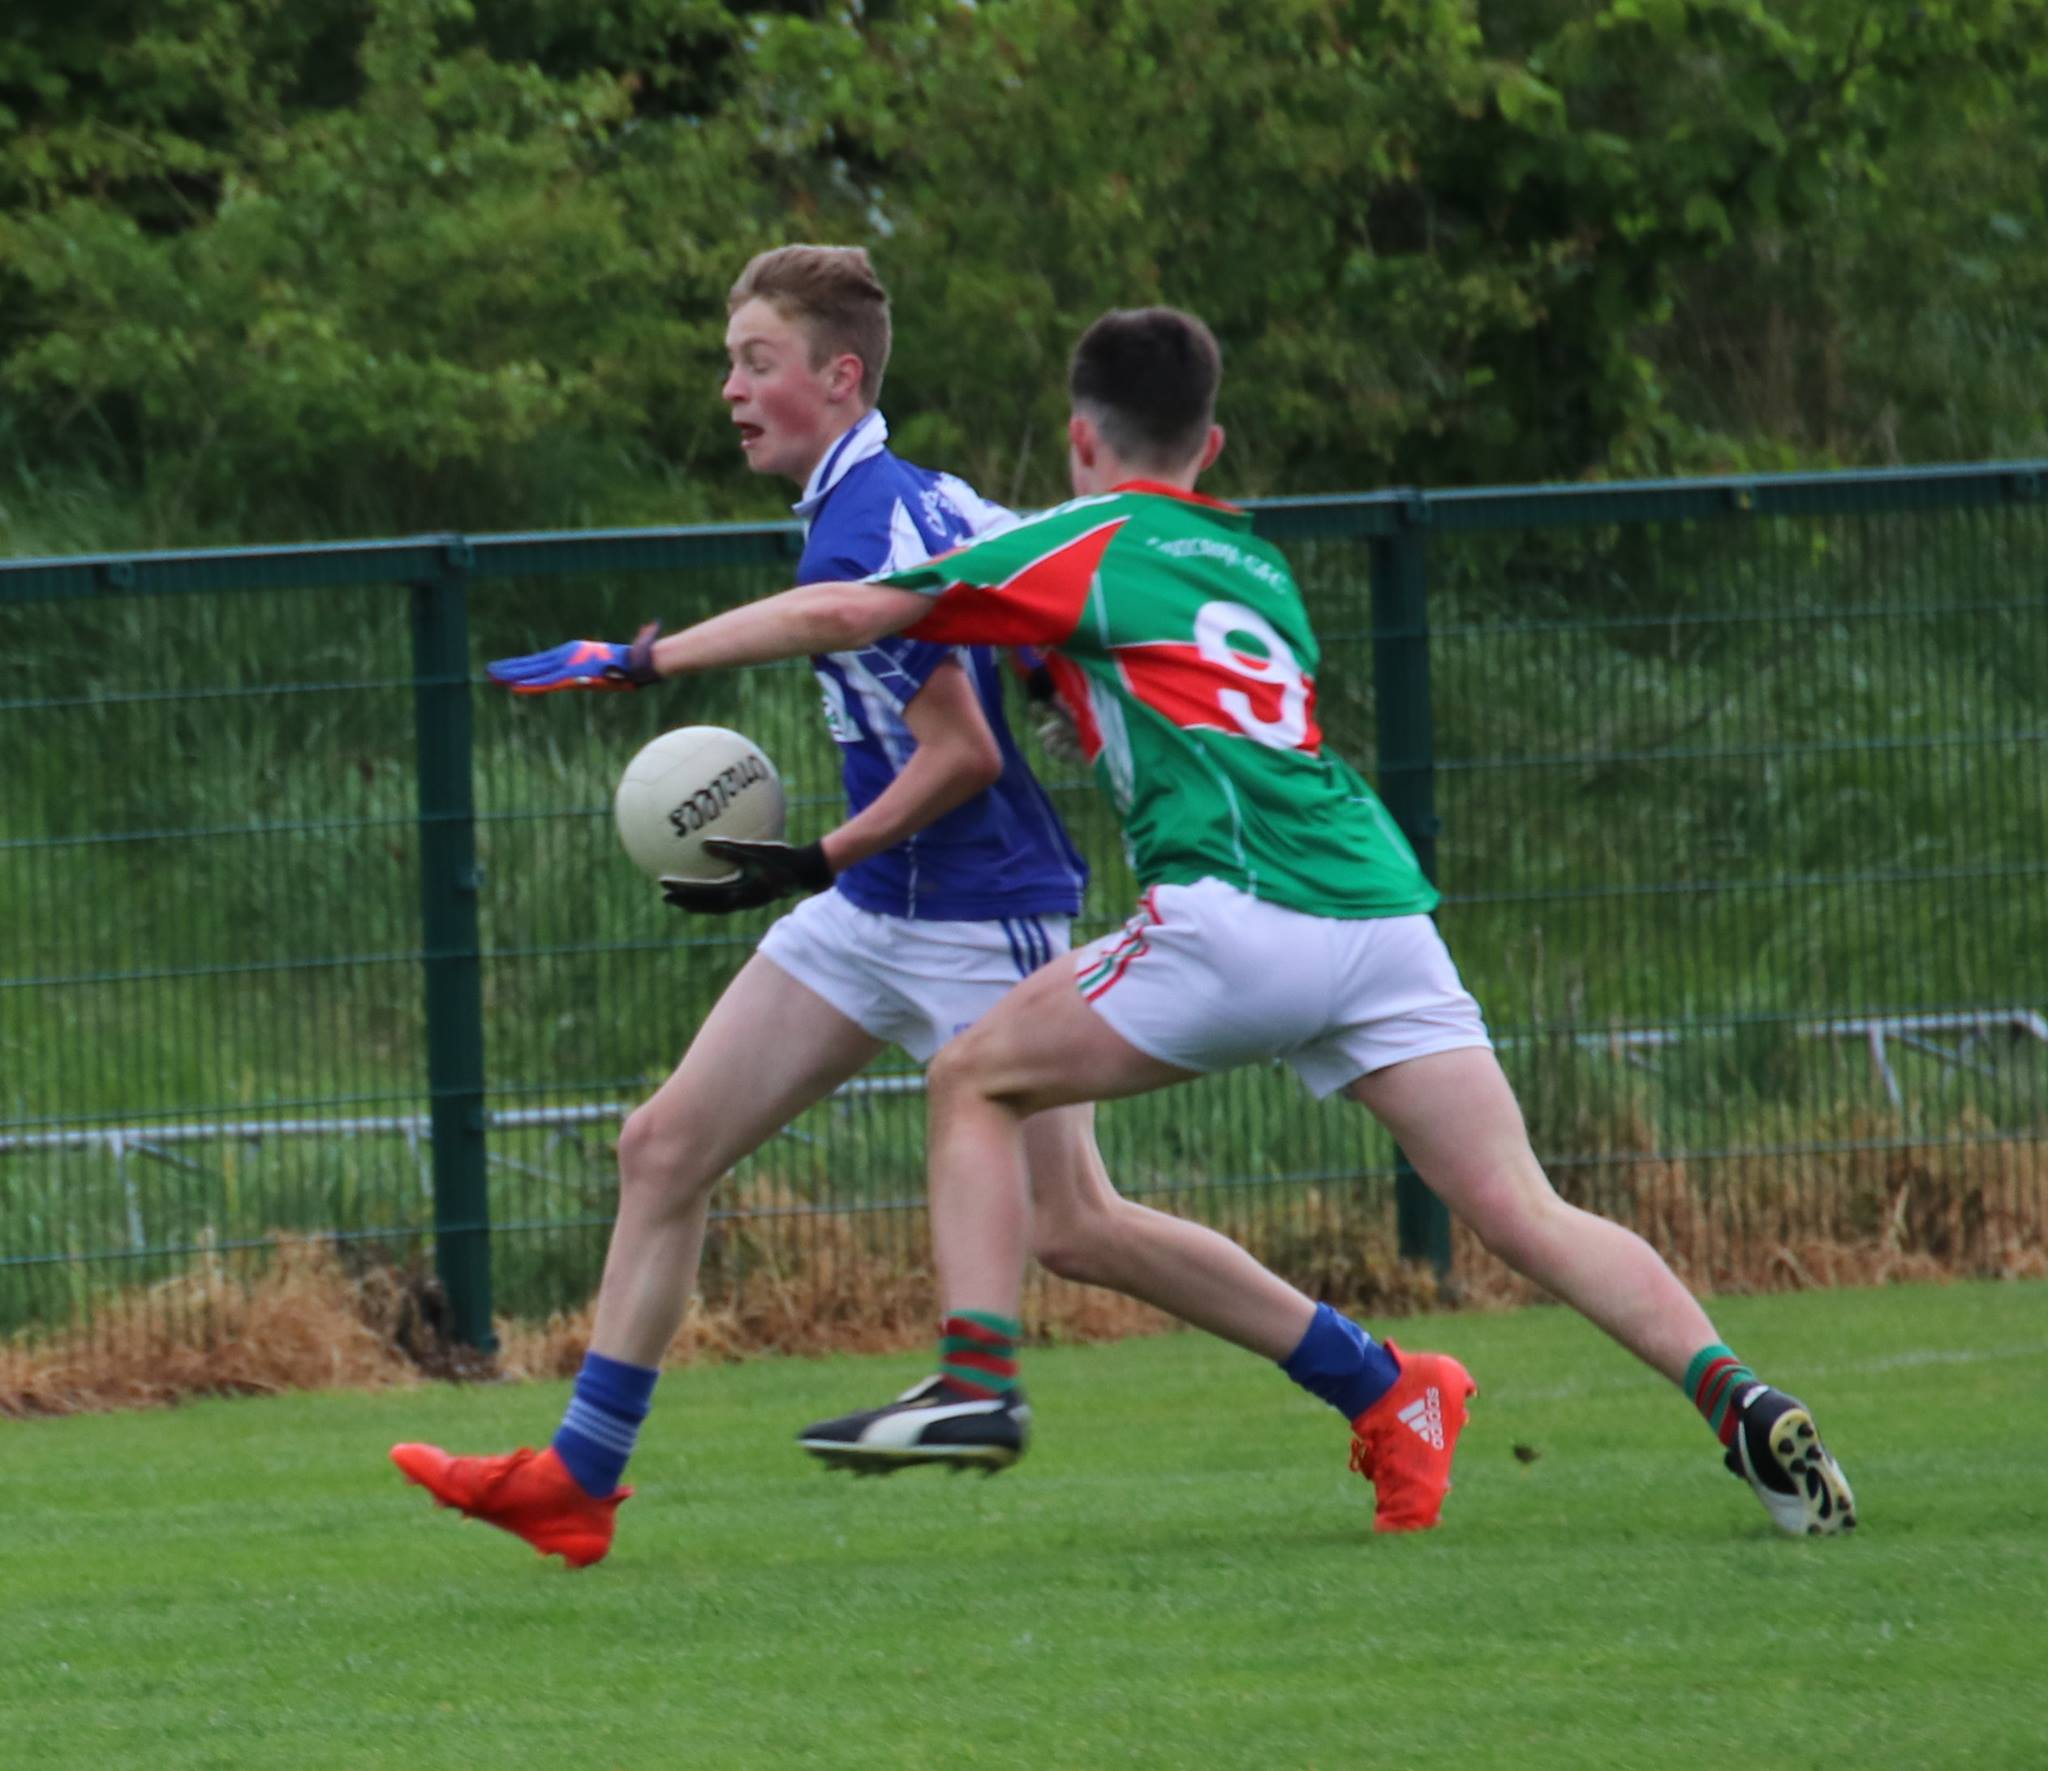 Suncroft v Celbridge Feile A Shield 11